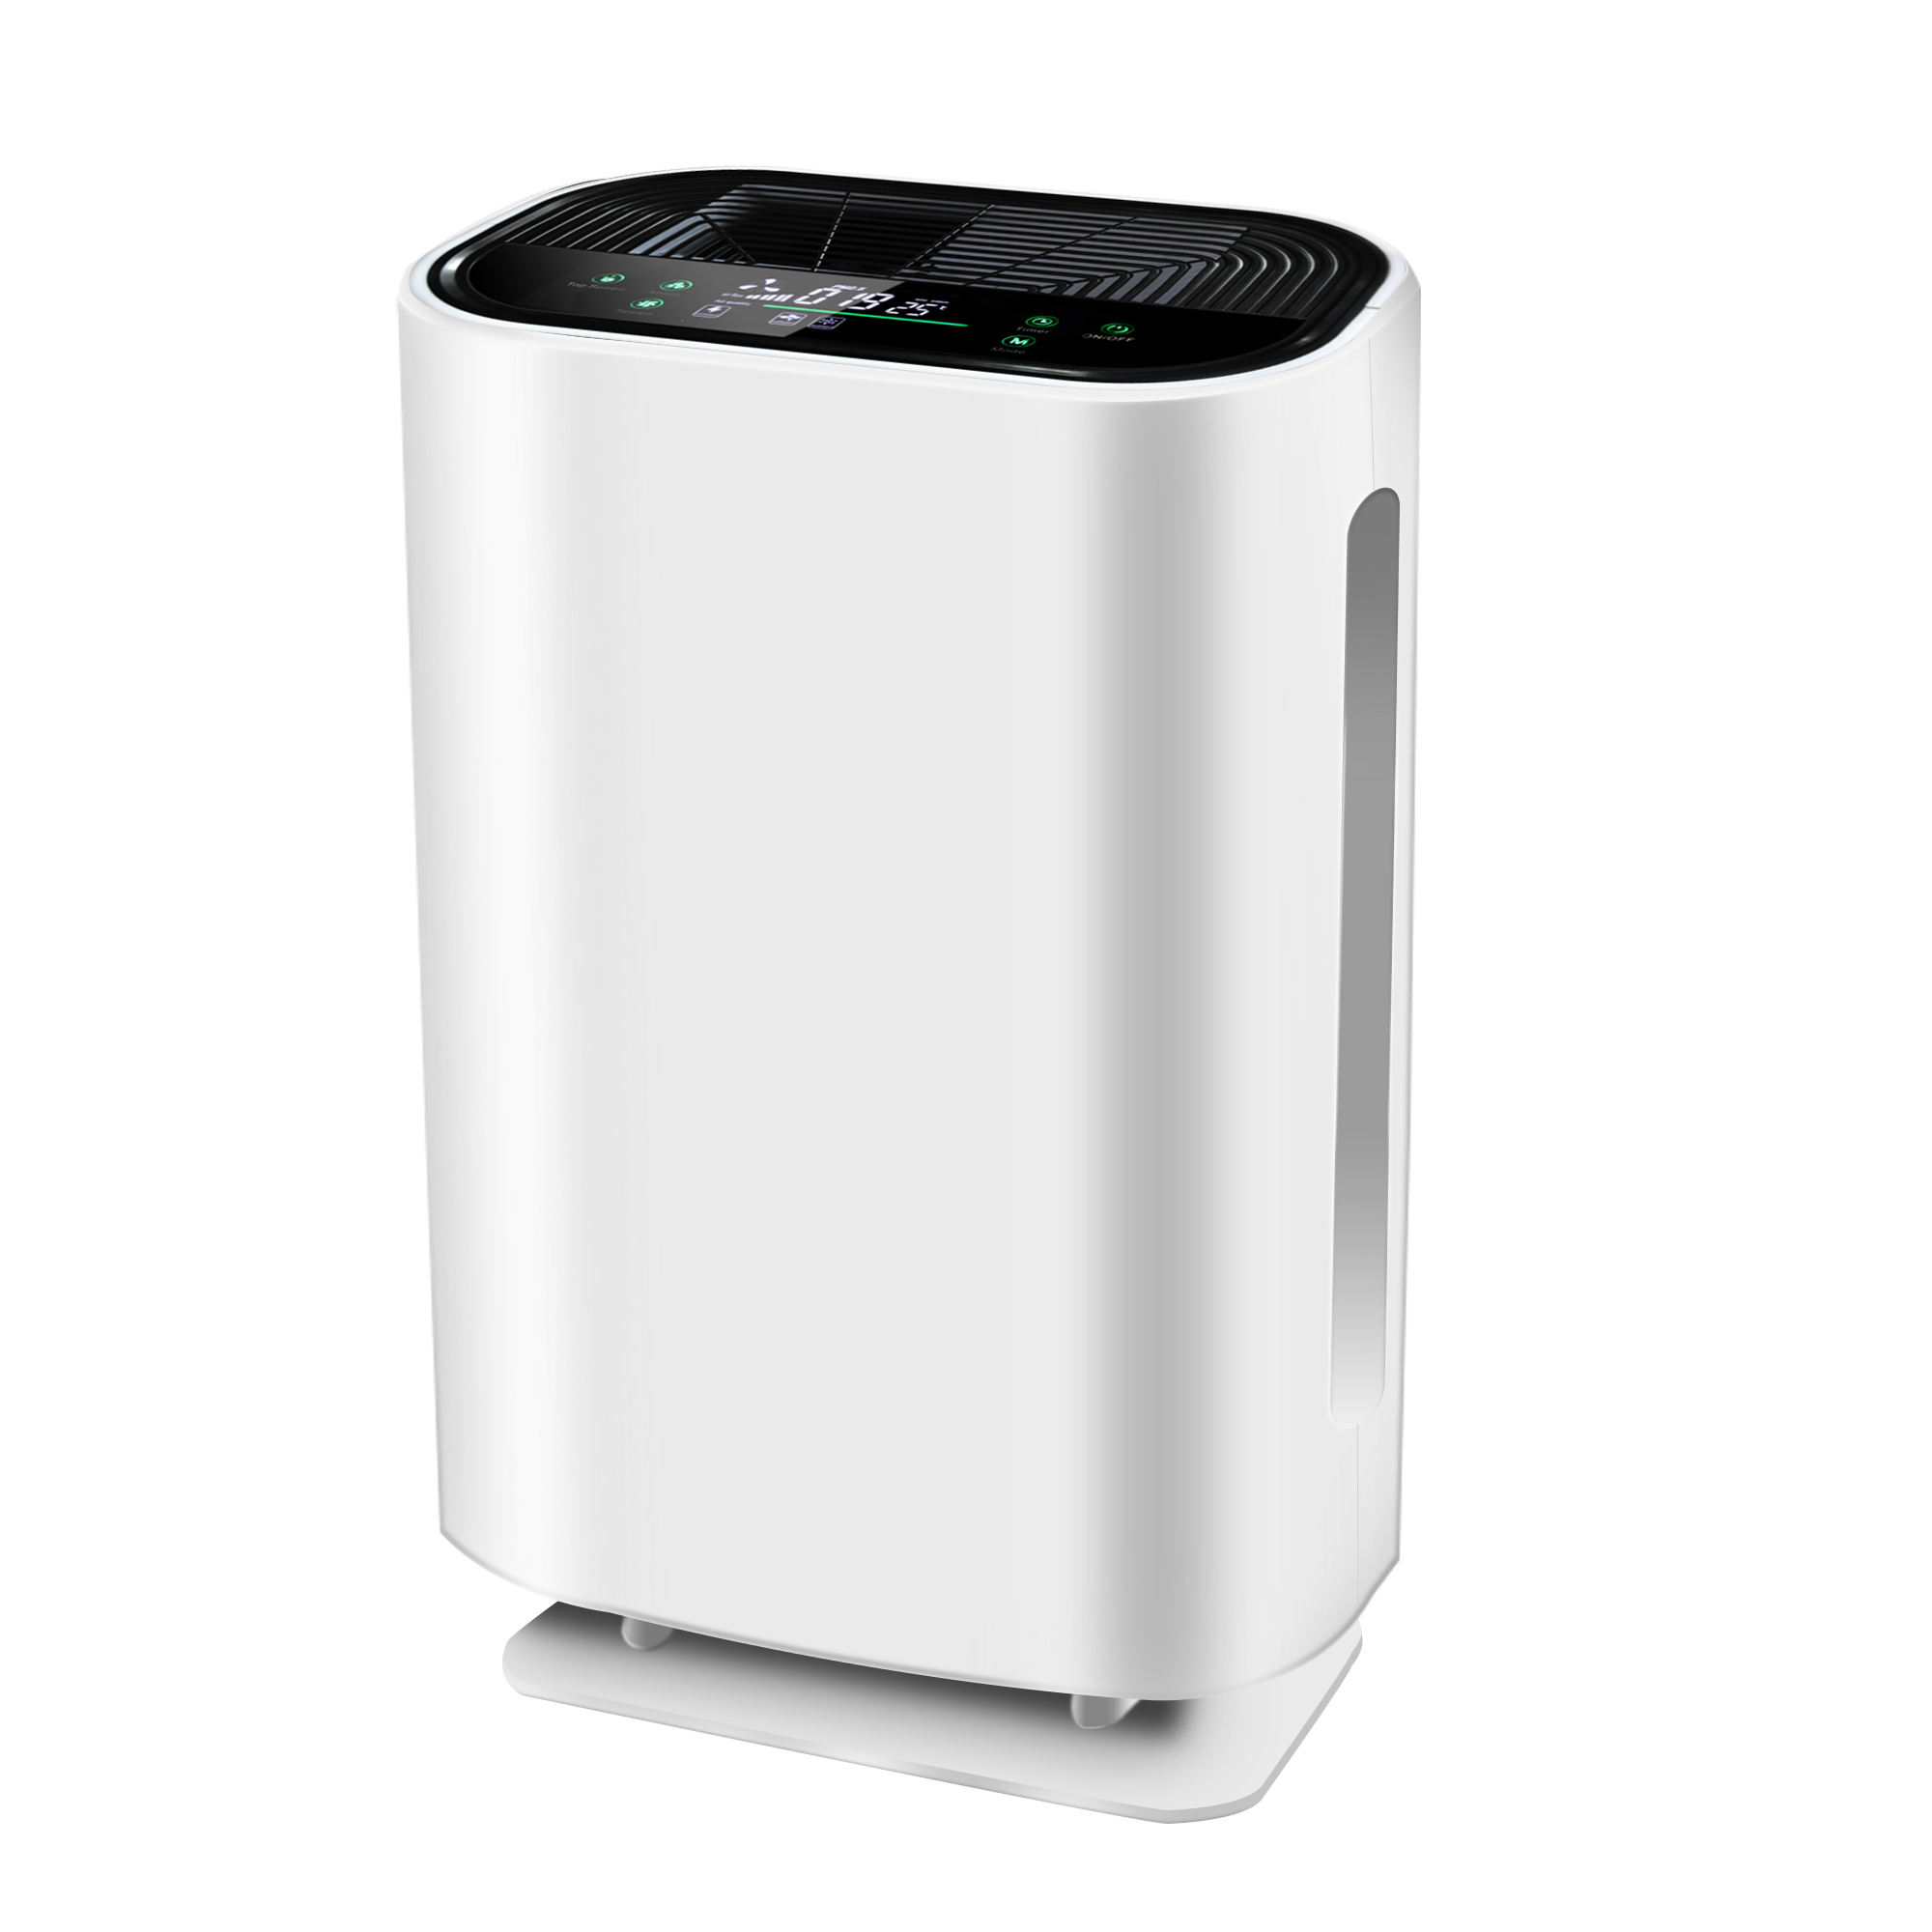 Home Appliances Products Air Purifier PP Pre filter+HEPA+Carbon Air Cleanert Home